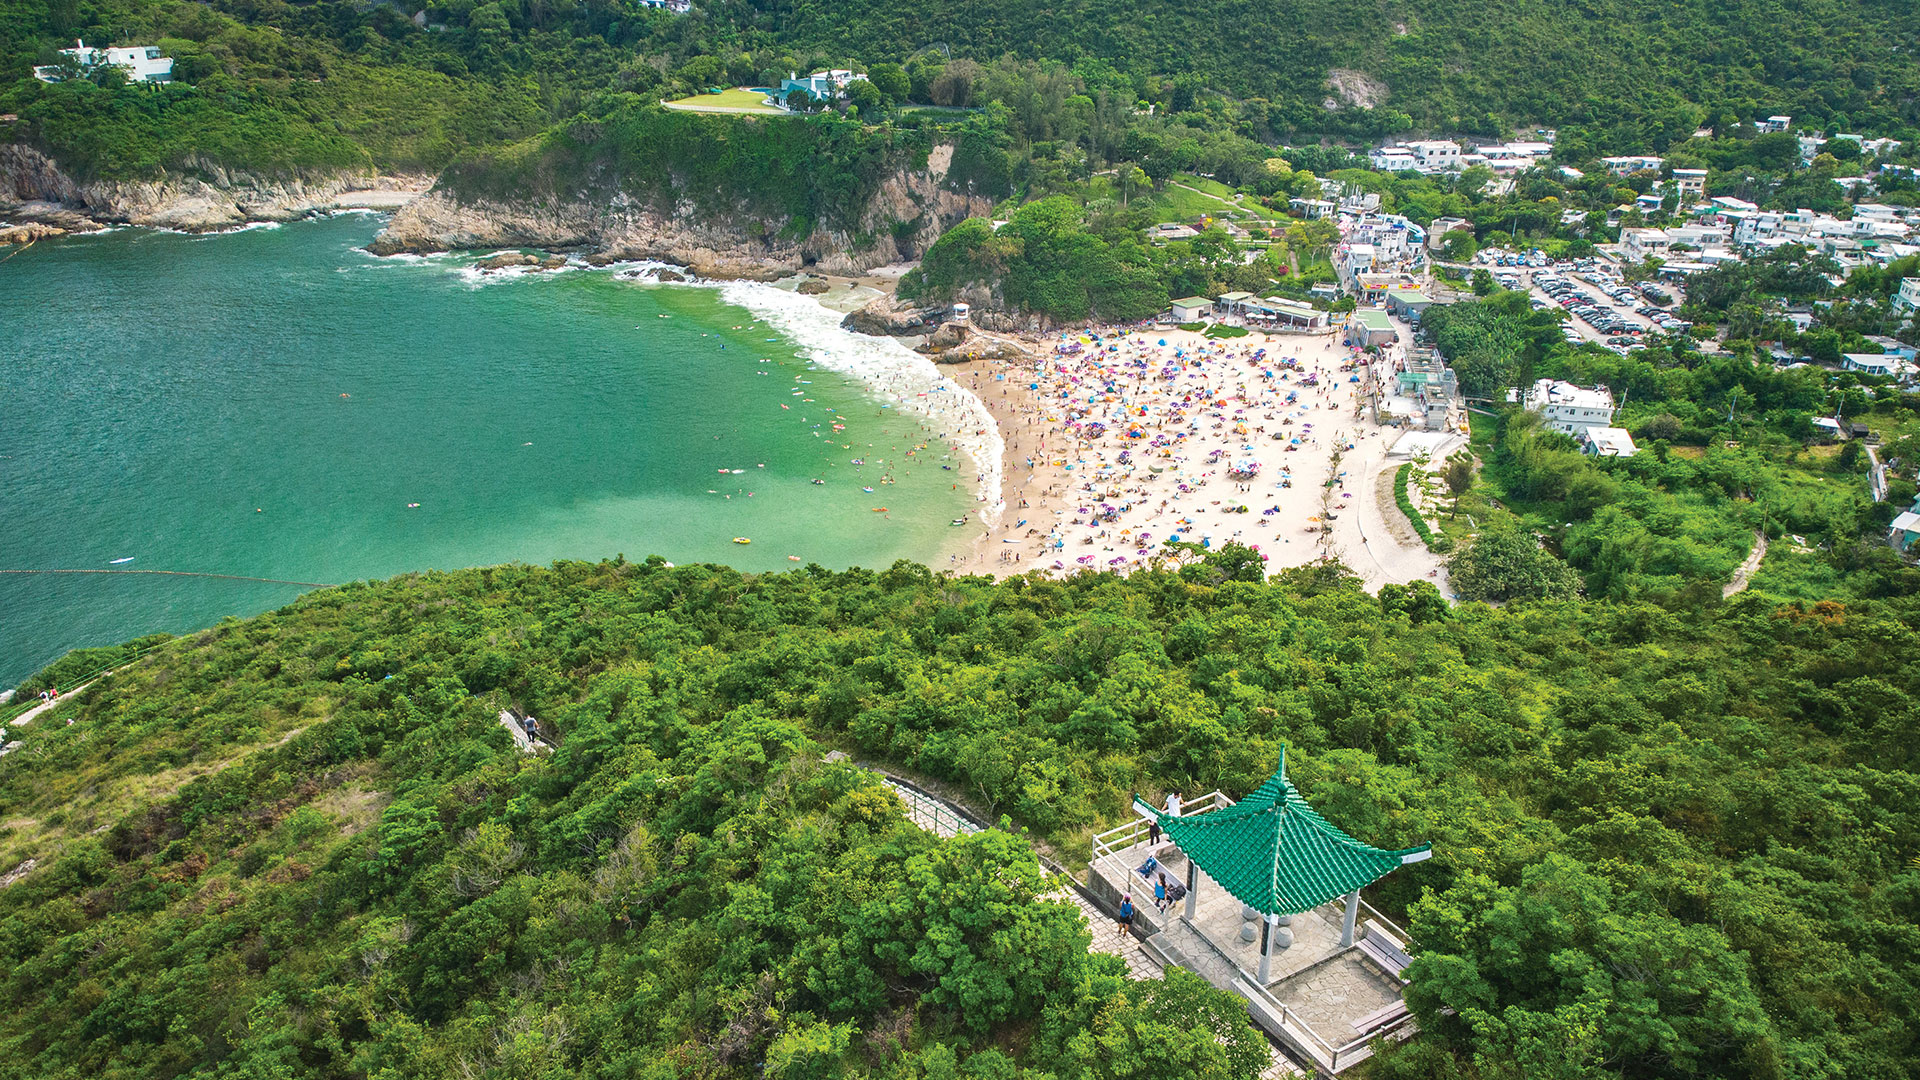 Siu Sai Wan to Shek O: view the sea and listen to the sounds of nature